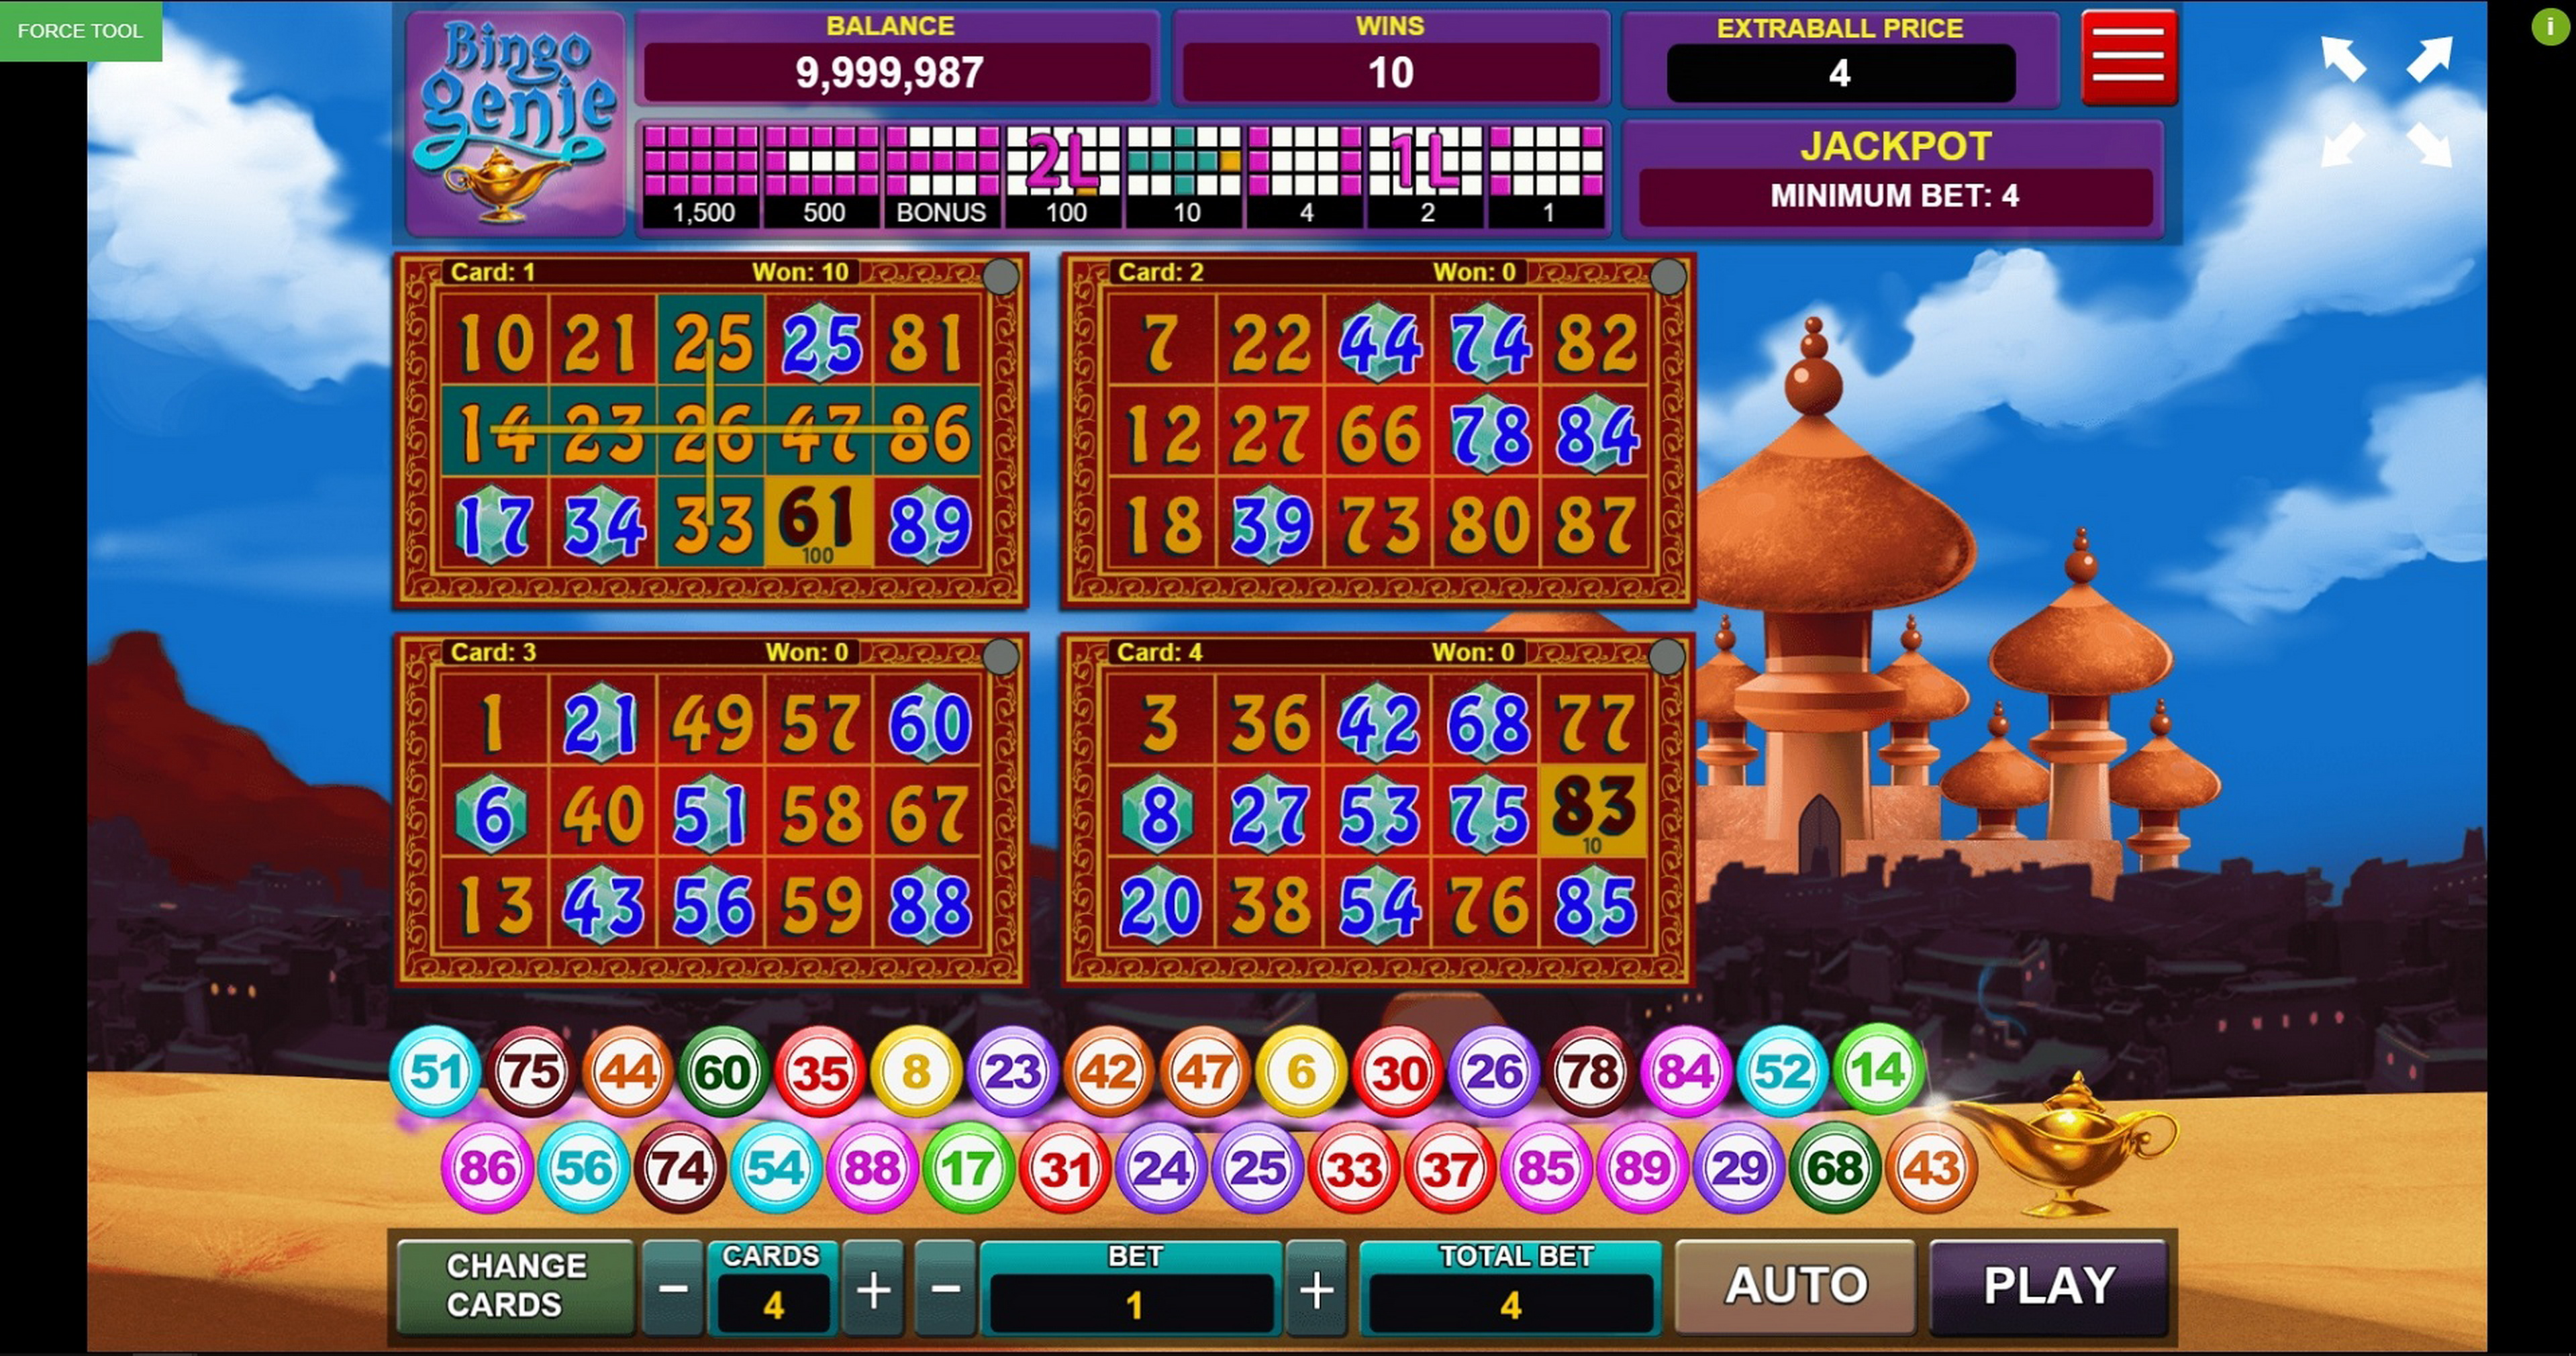 Win Money in Bingo Genie Free Slot Game by Caleta Gaming